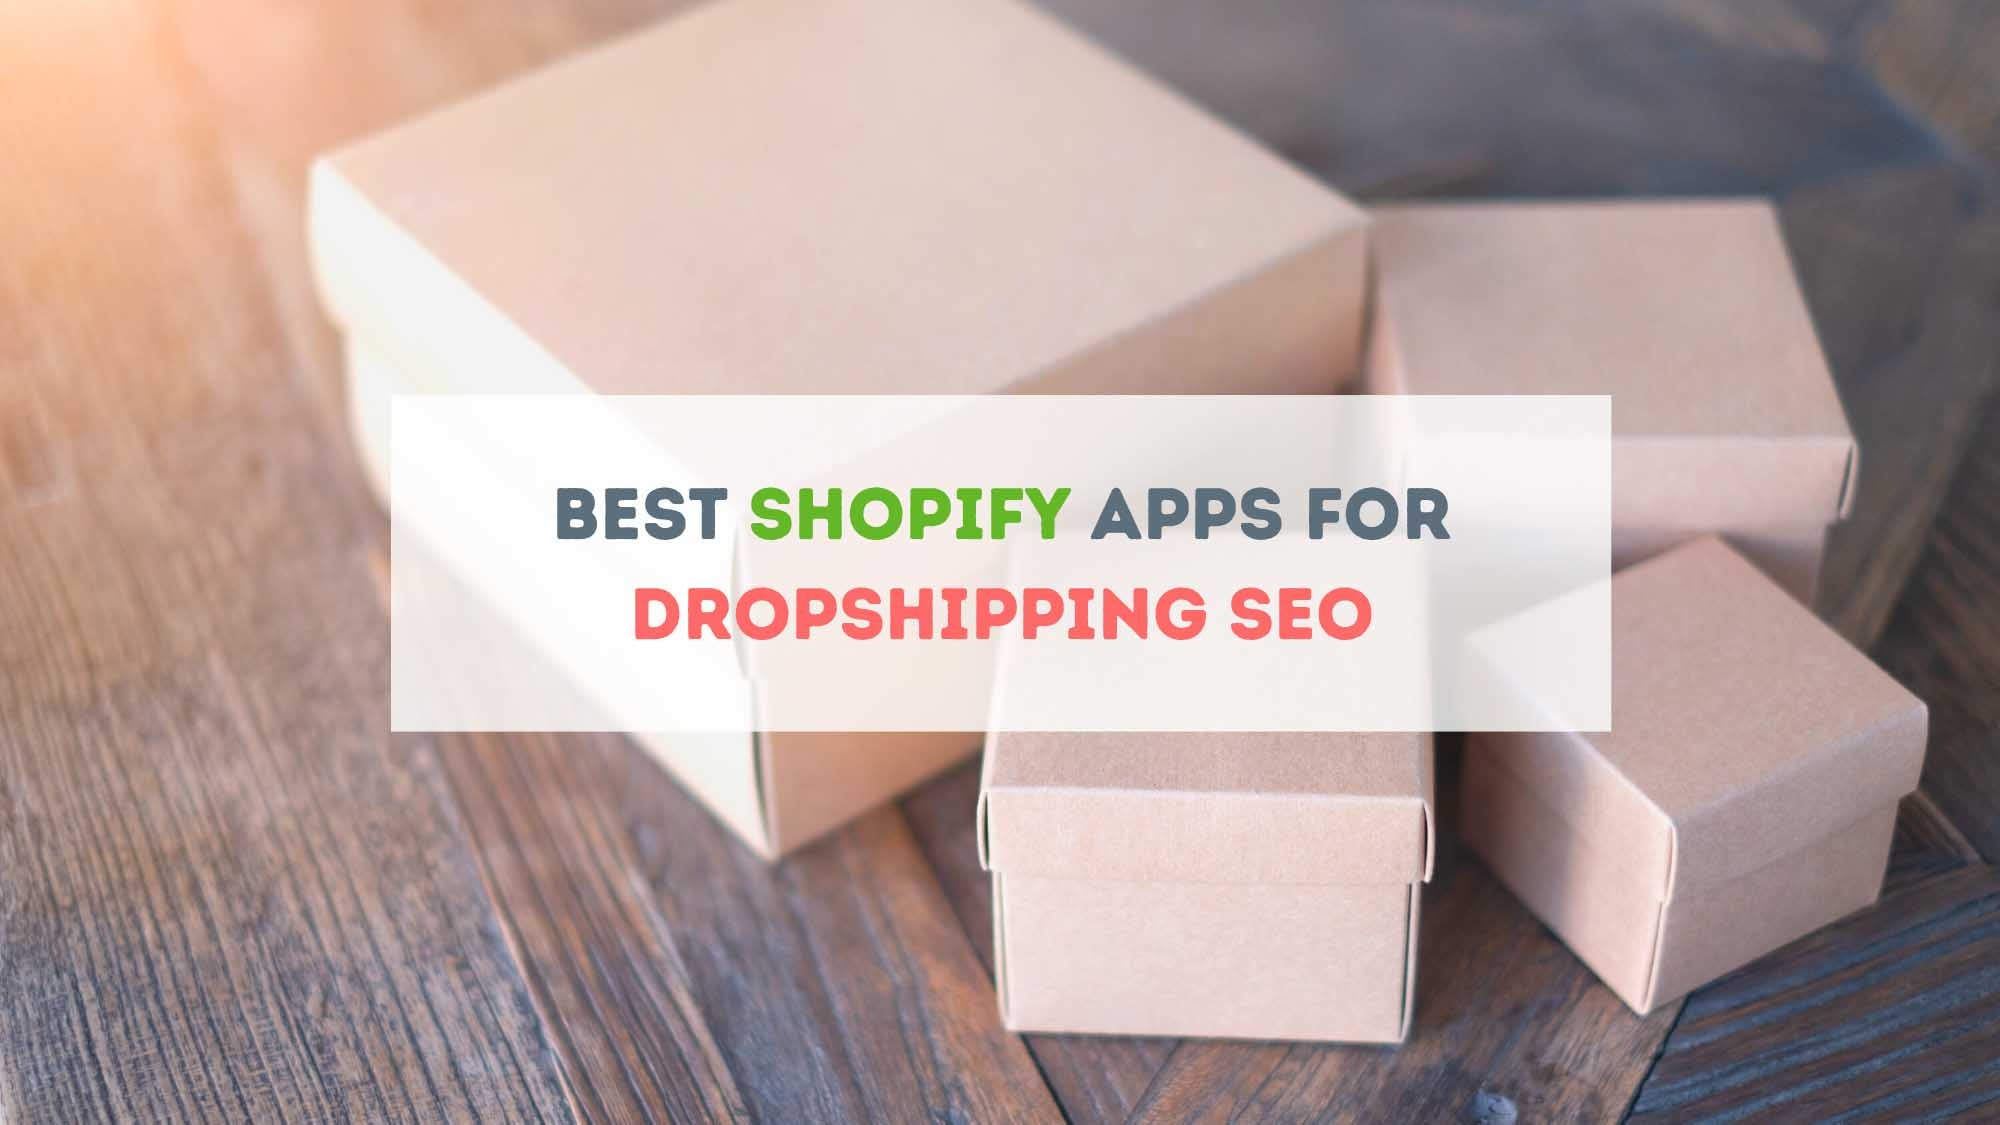 Best Shopify Apps For Dropshipping SEO - DropshipUSA